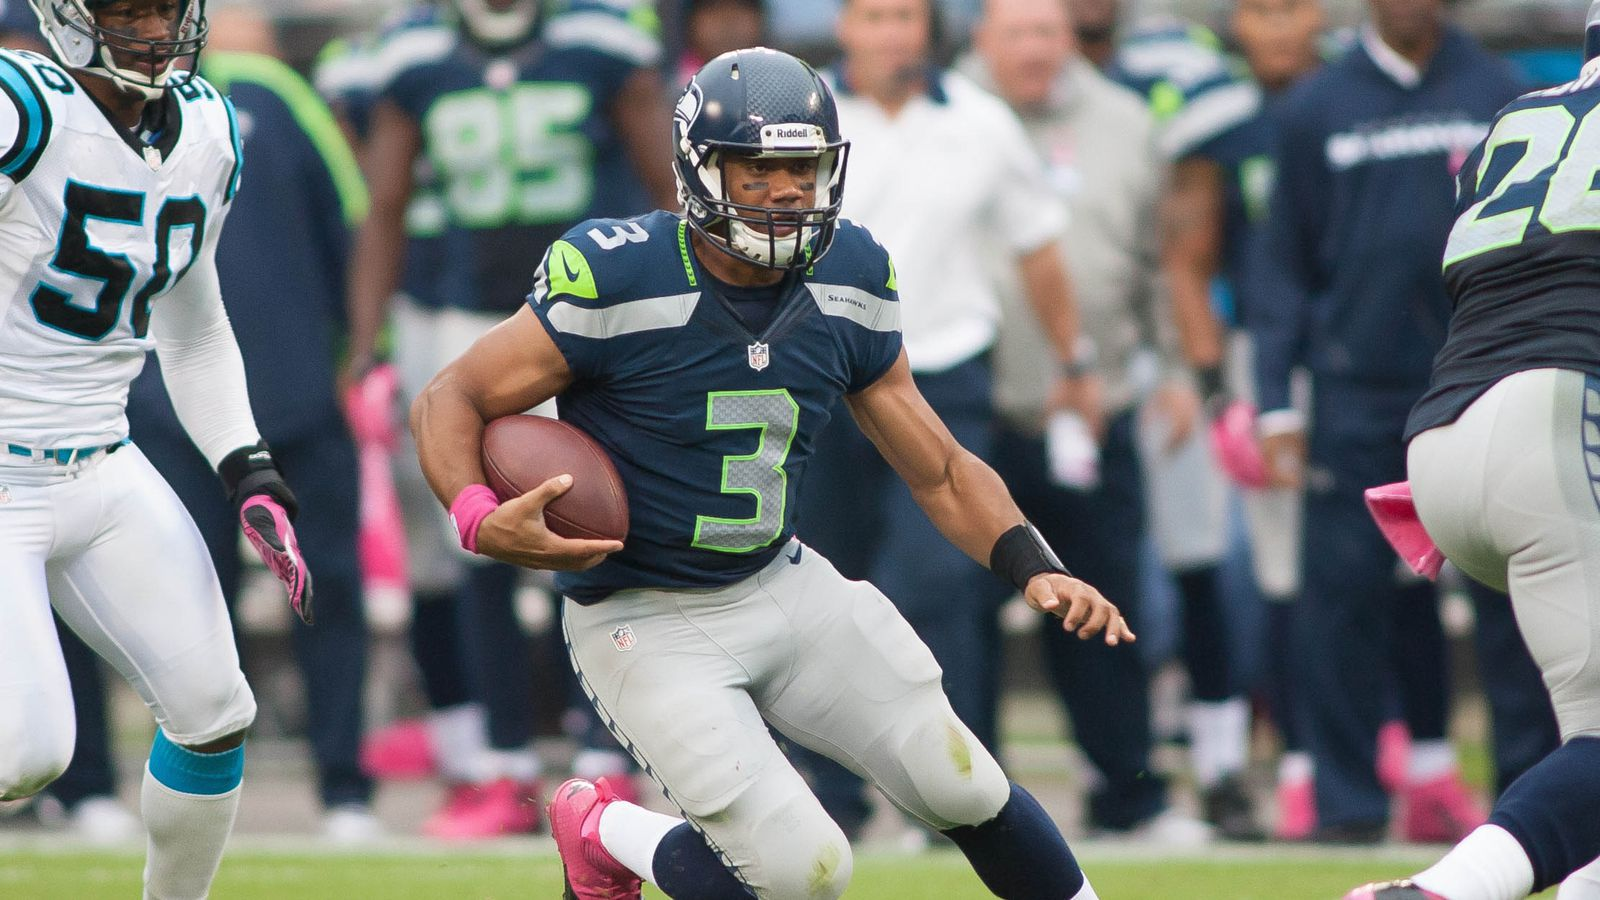 Rockets Vs Grizzlies >> Seahawks vs. Panthers: Fantasy football projections